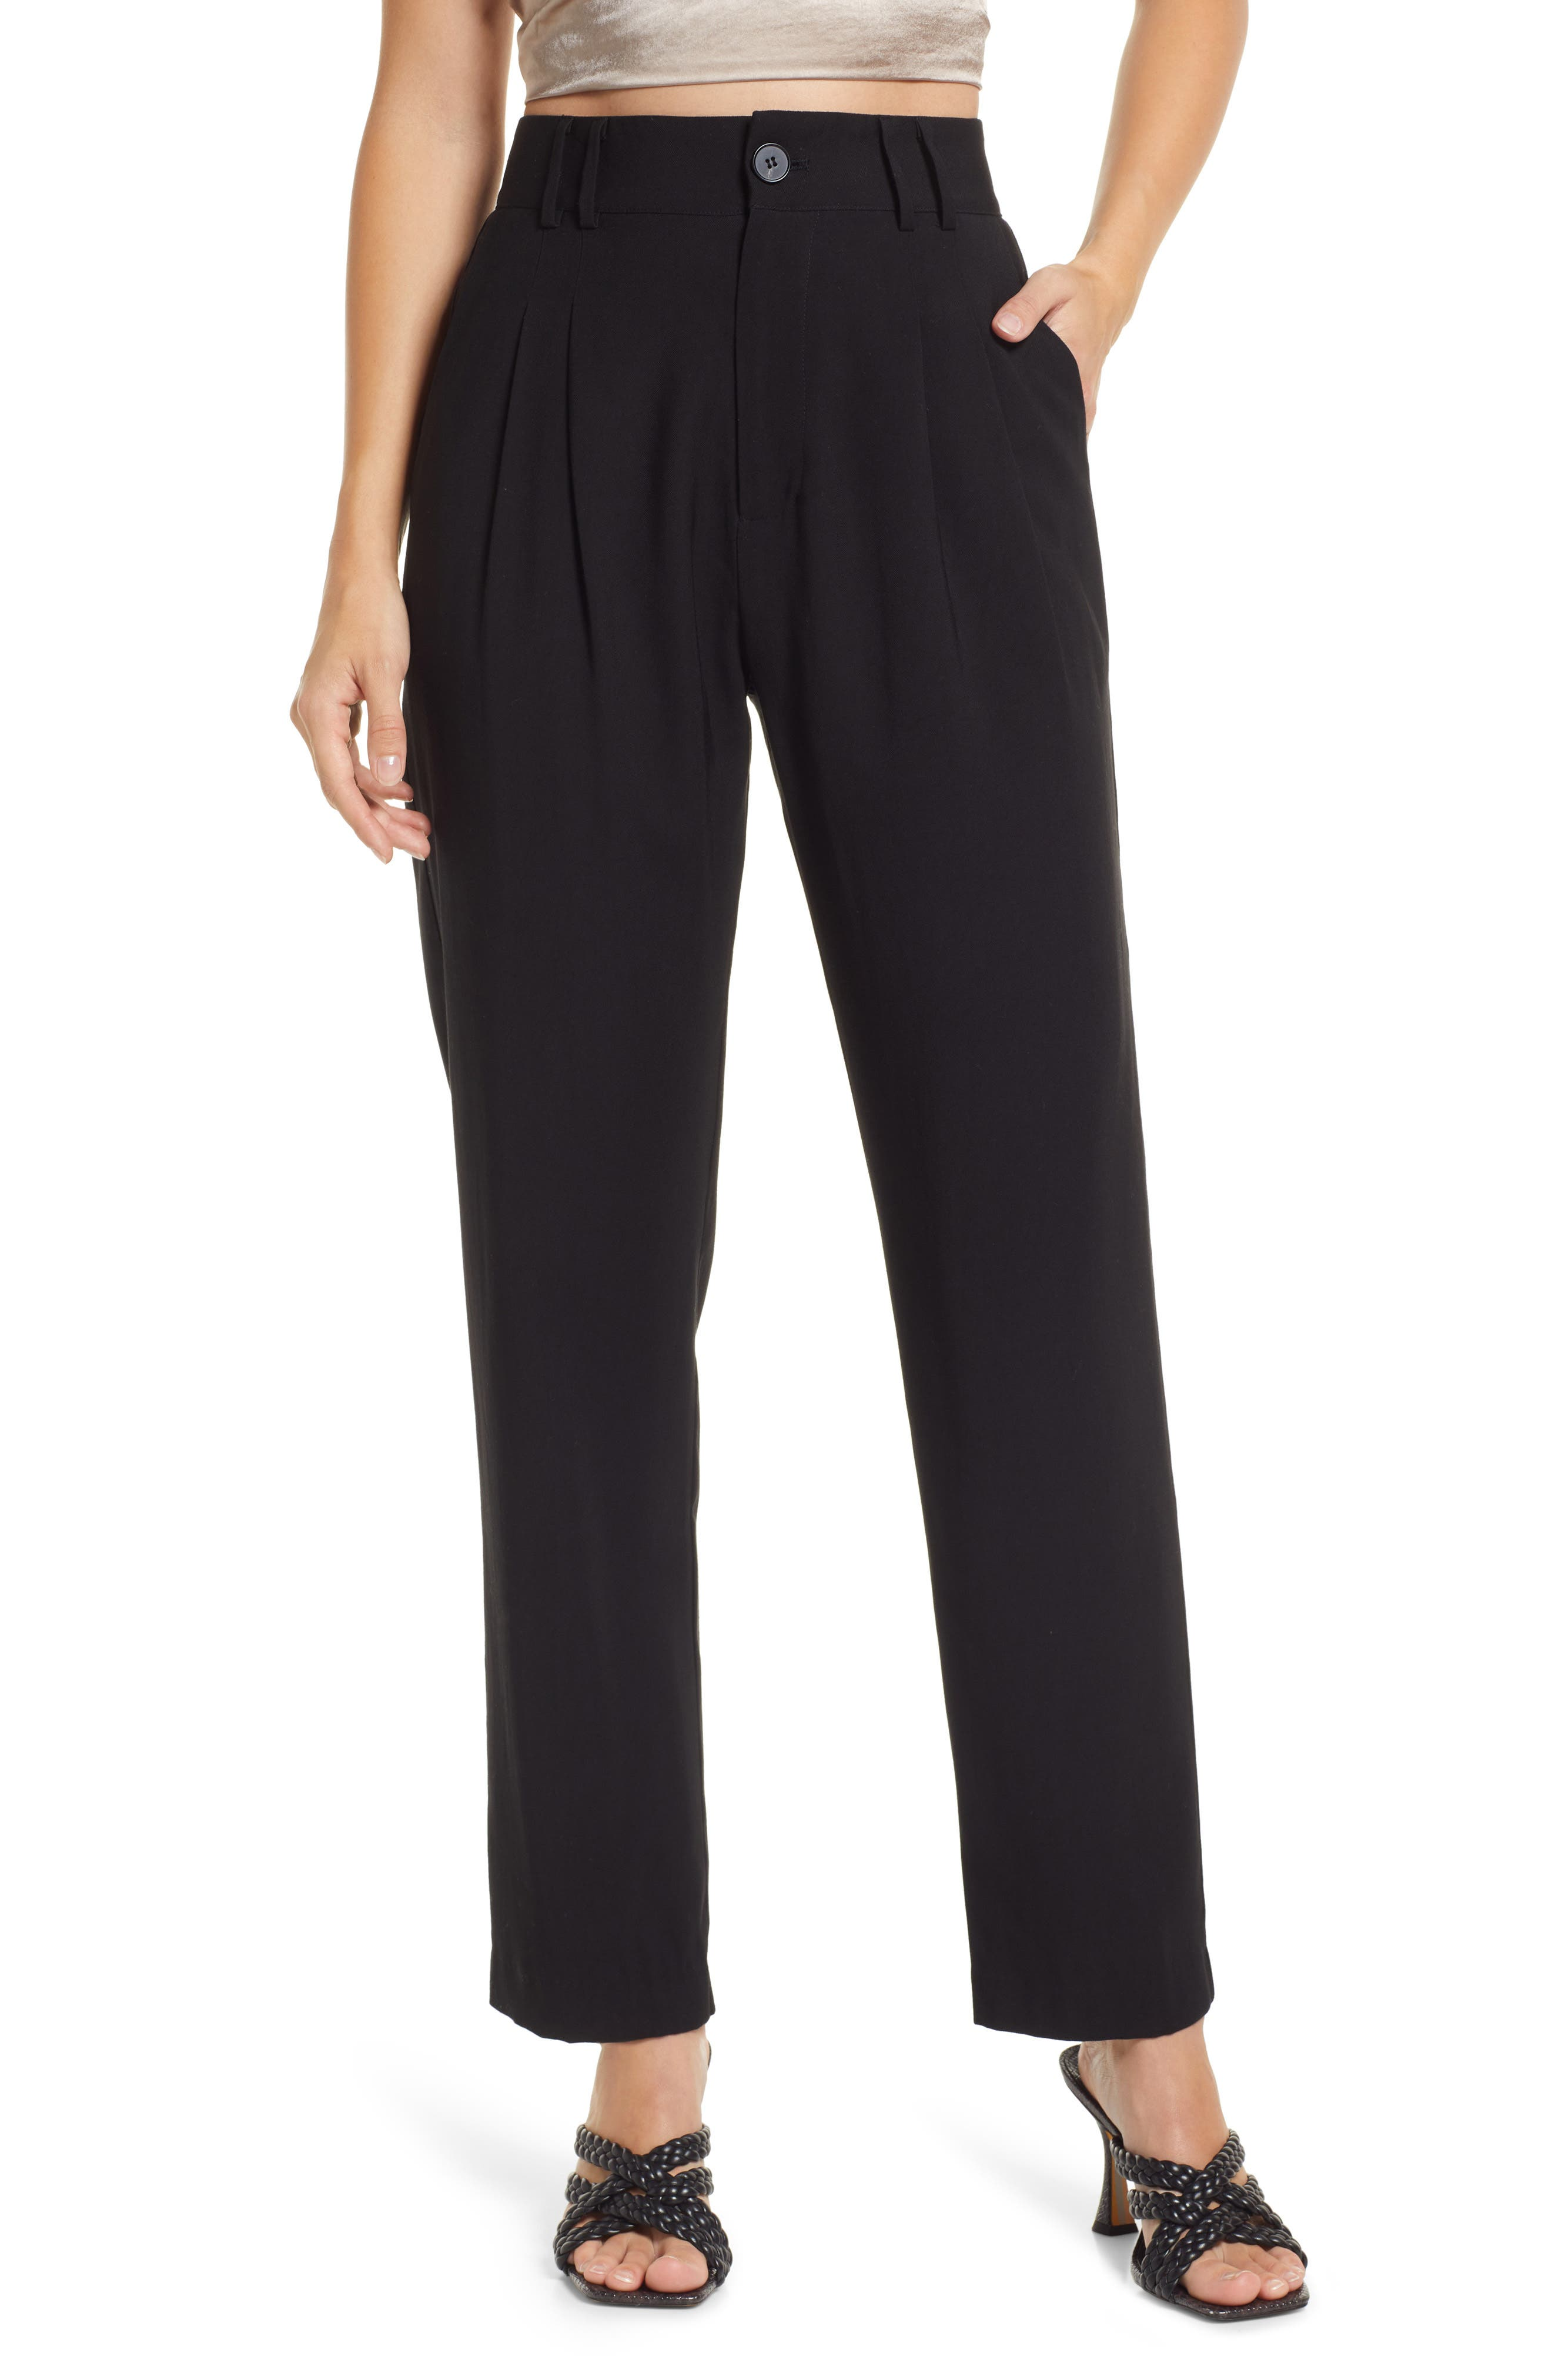 Strictly Business High Waist Taper Pants